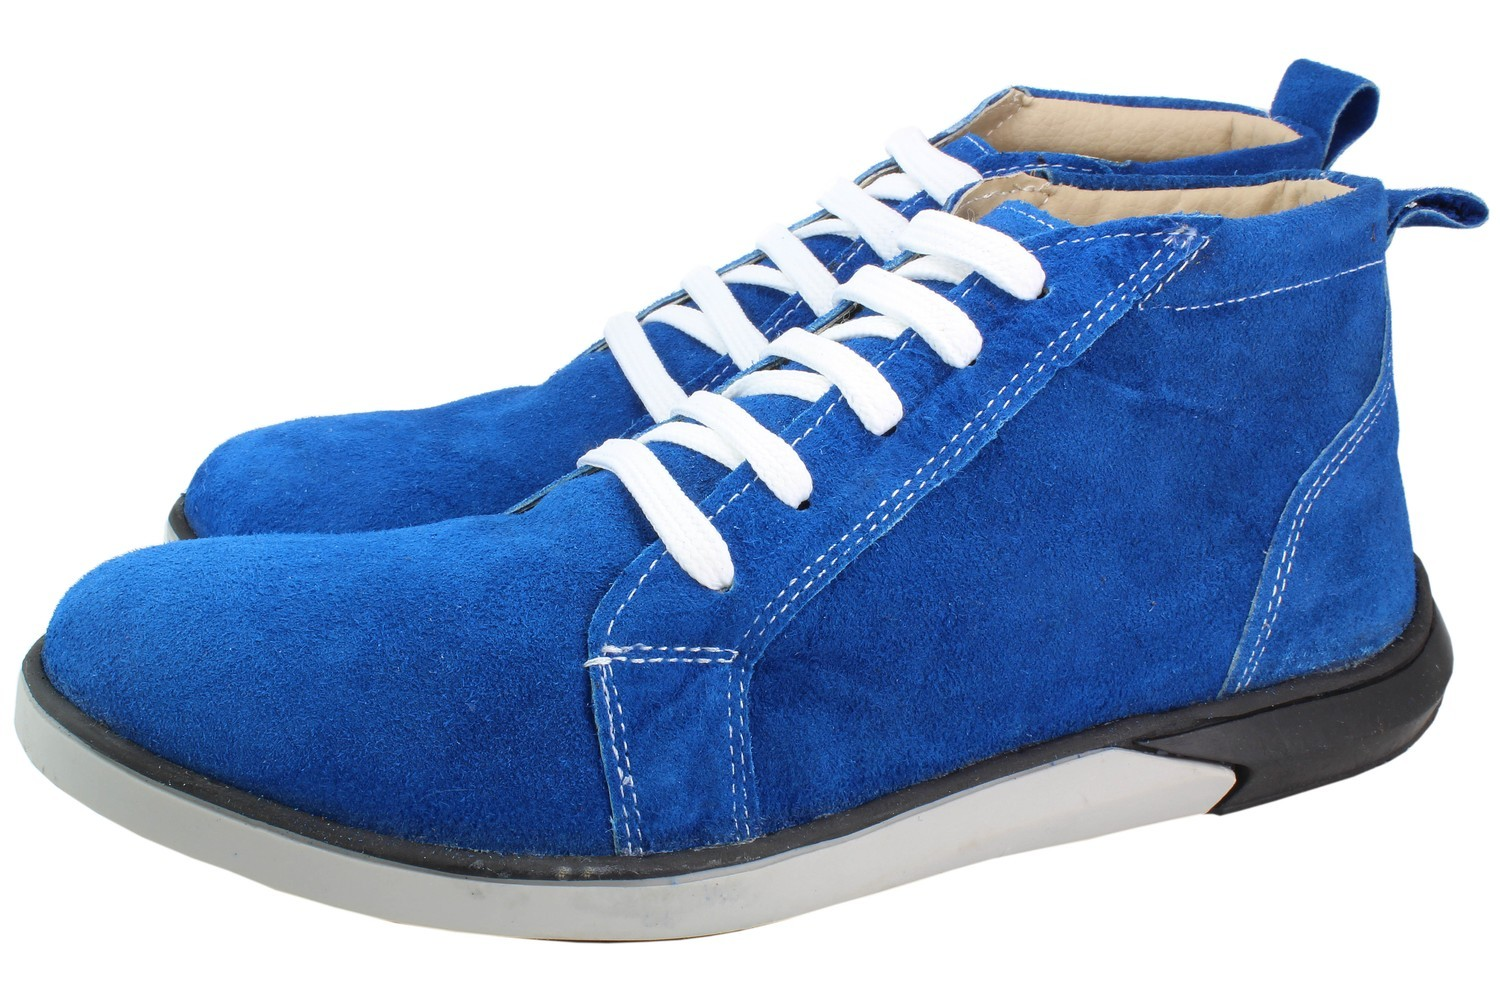 Mens Boots Genuine Suede Leather Blue - SUGGESTED RETAIL PRICE $45.00 - WHOLESALE PRICE $7.25 - Minimum purchase 11pairs